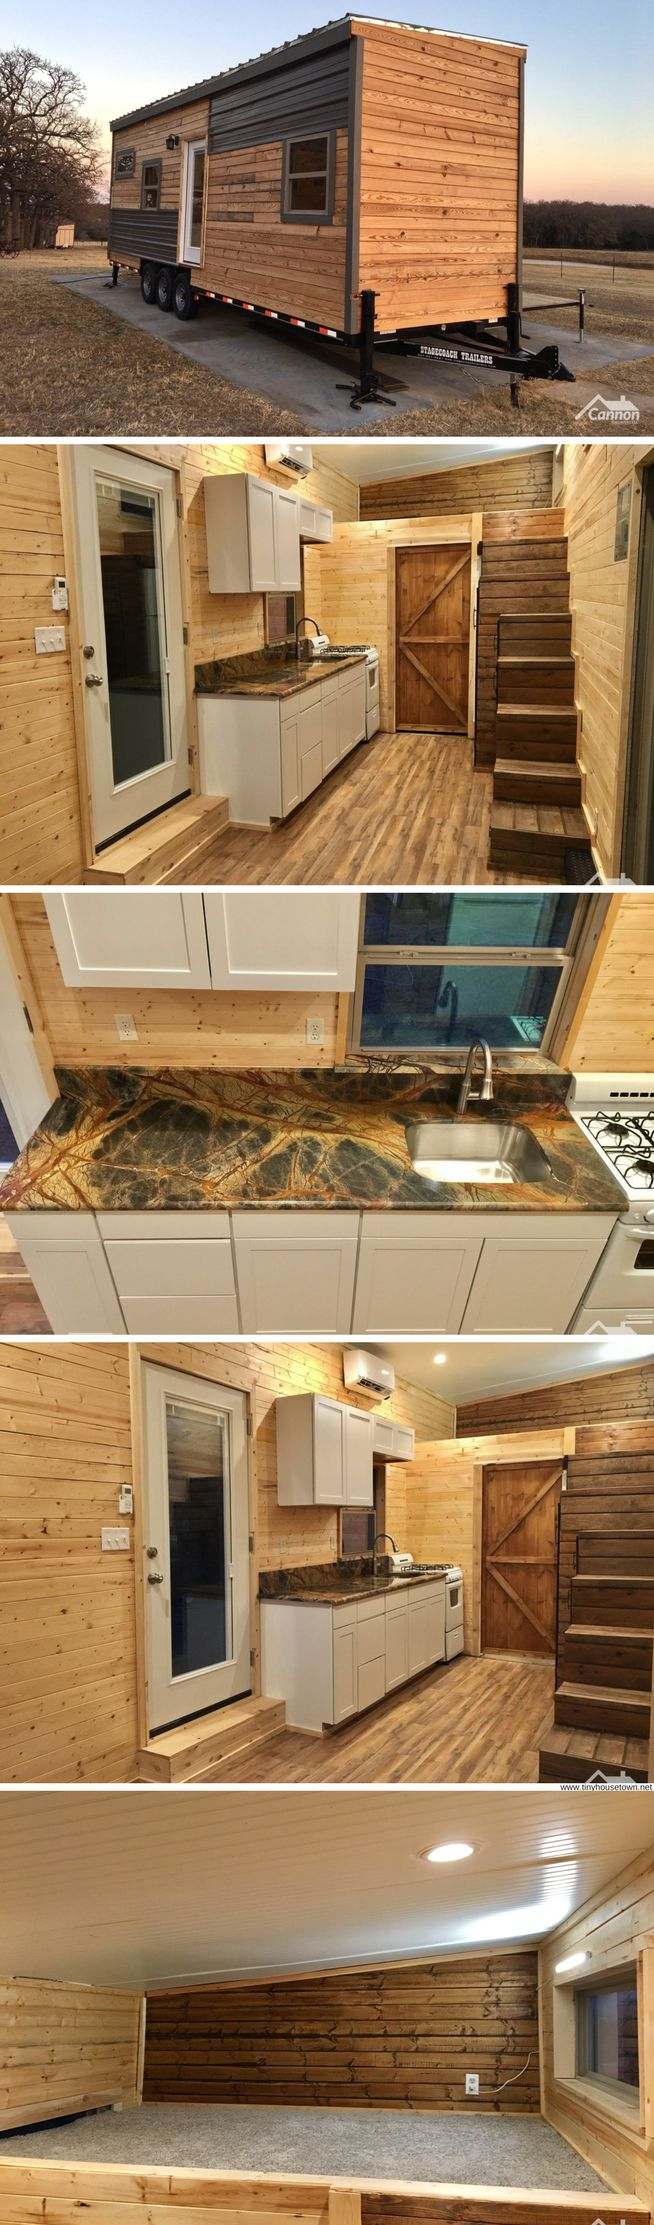 Gorgeous modern/rustic tiny house on wheels built by Cannon Properties #tinyhomeonwheelsplans